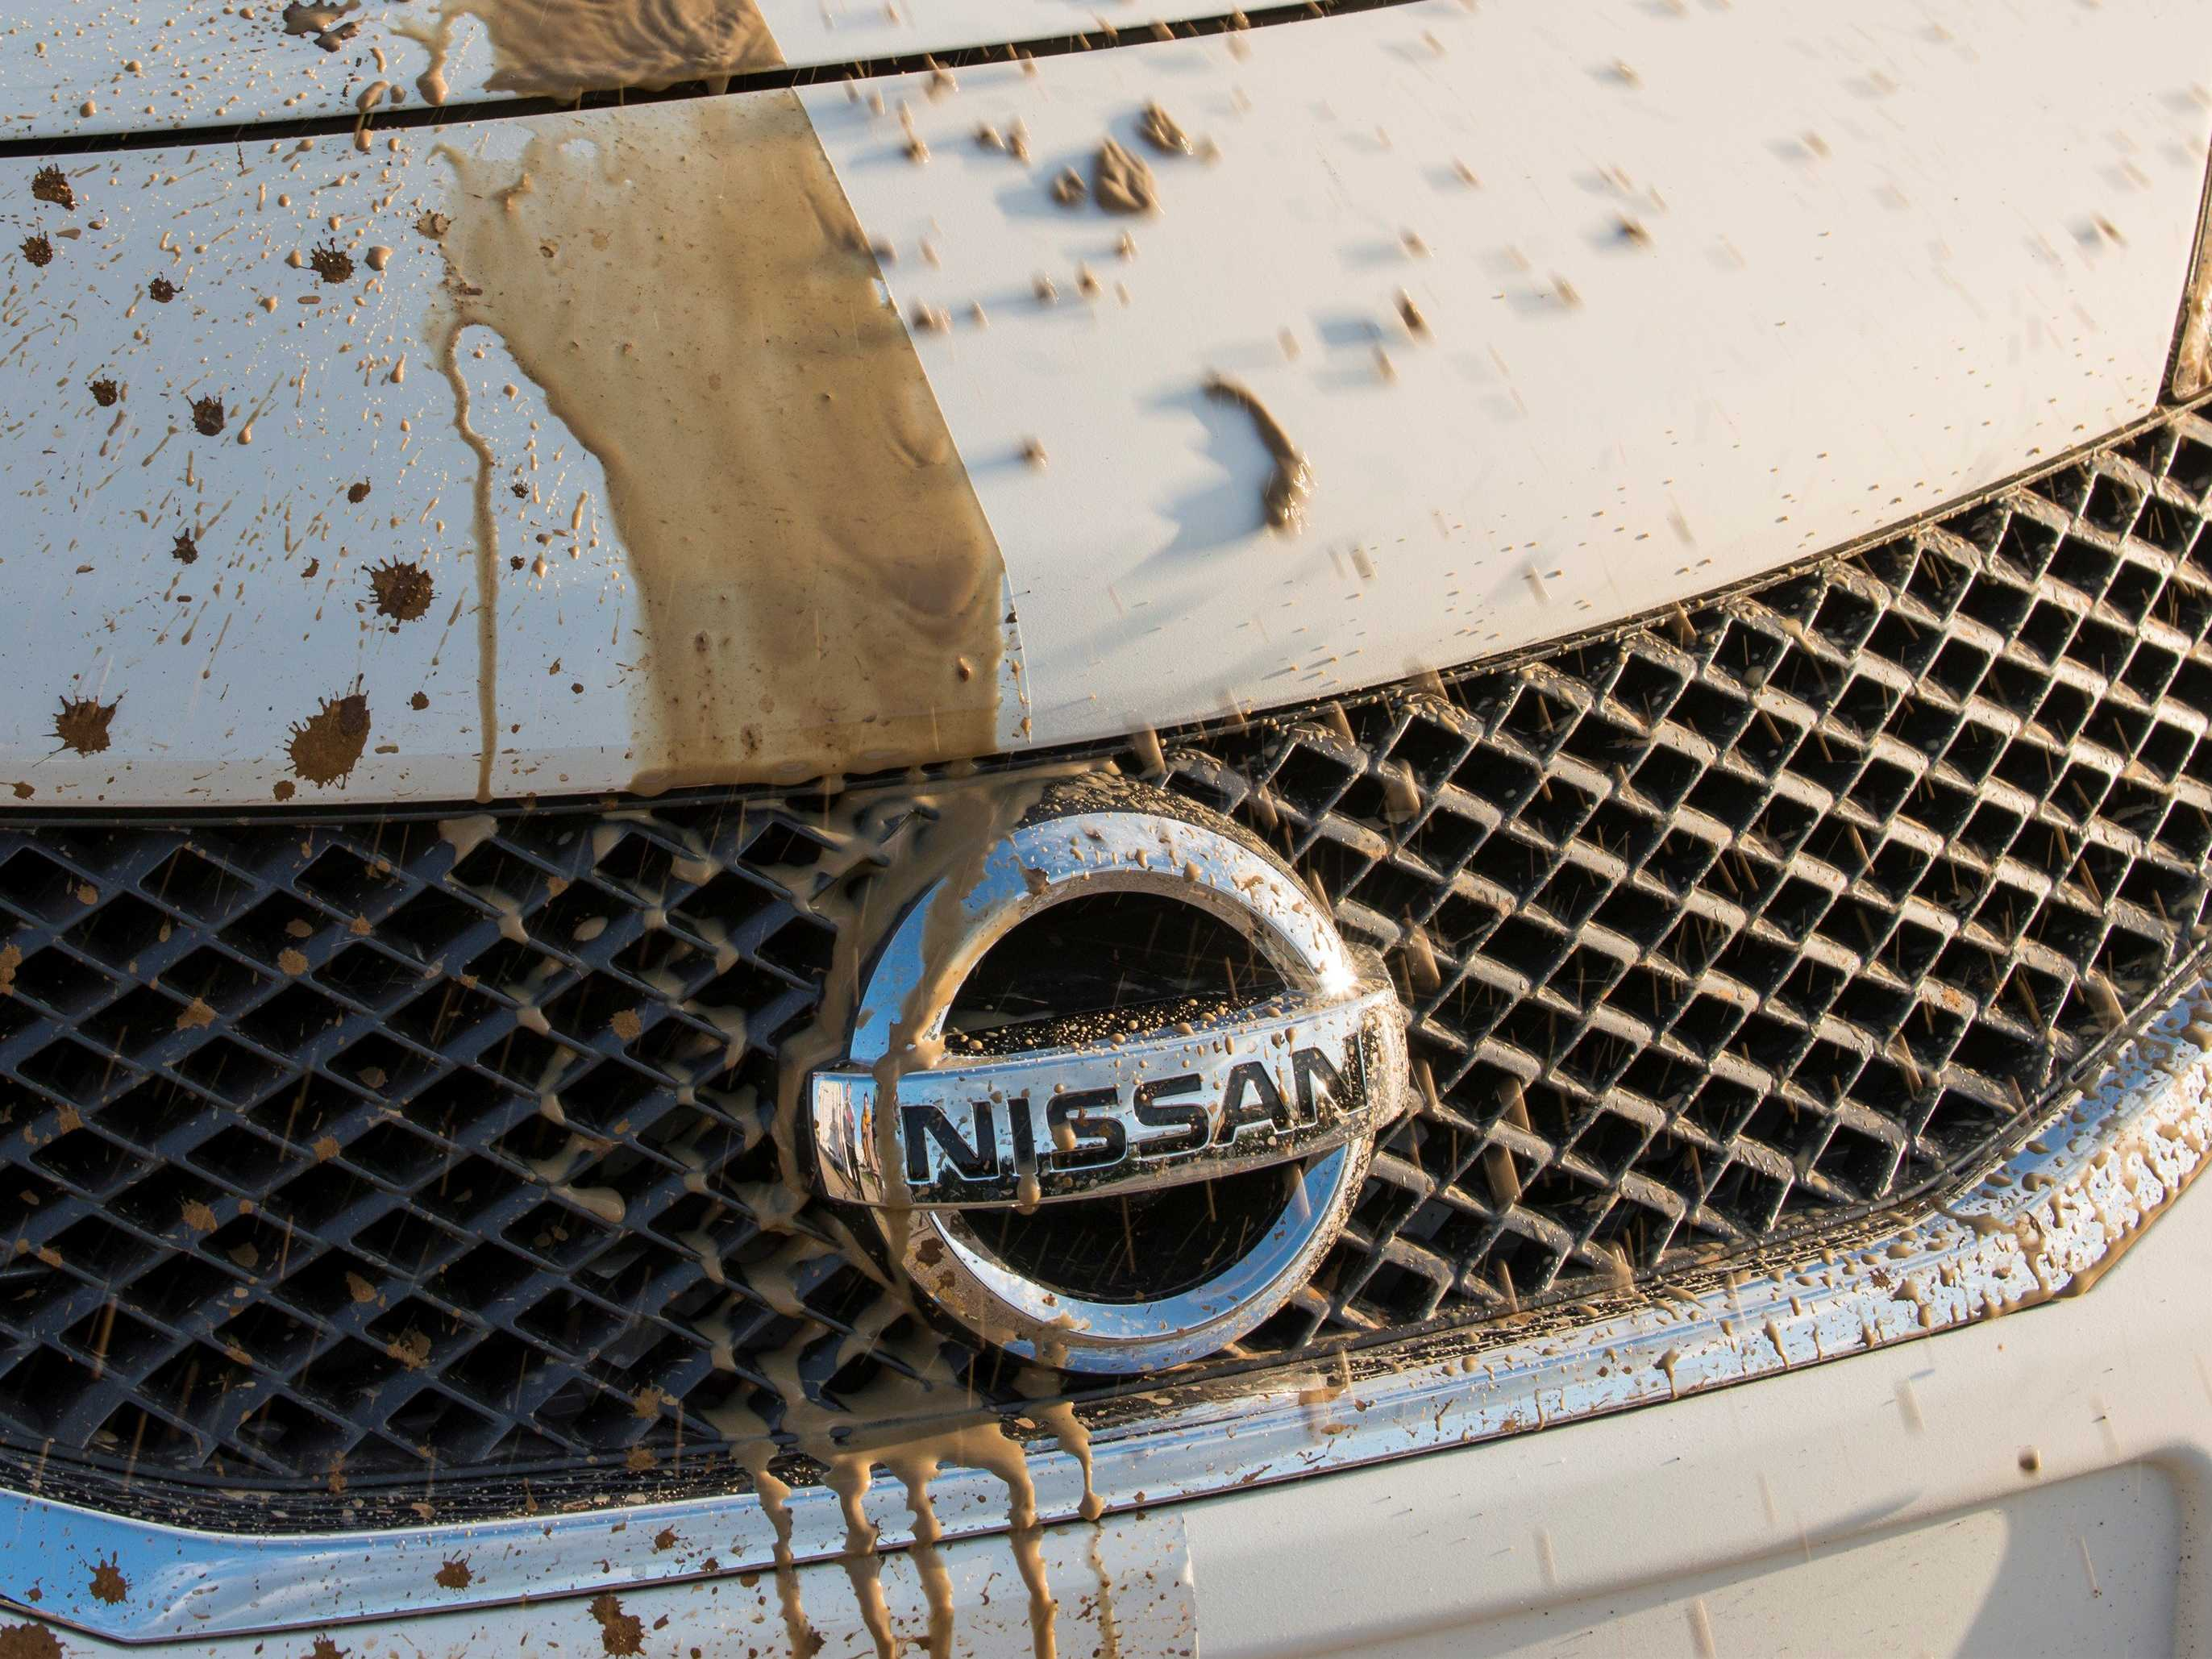 nissan-has-made-a-self-cleaning-car